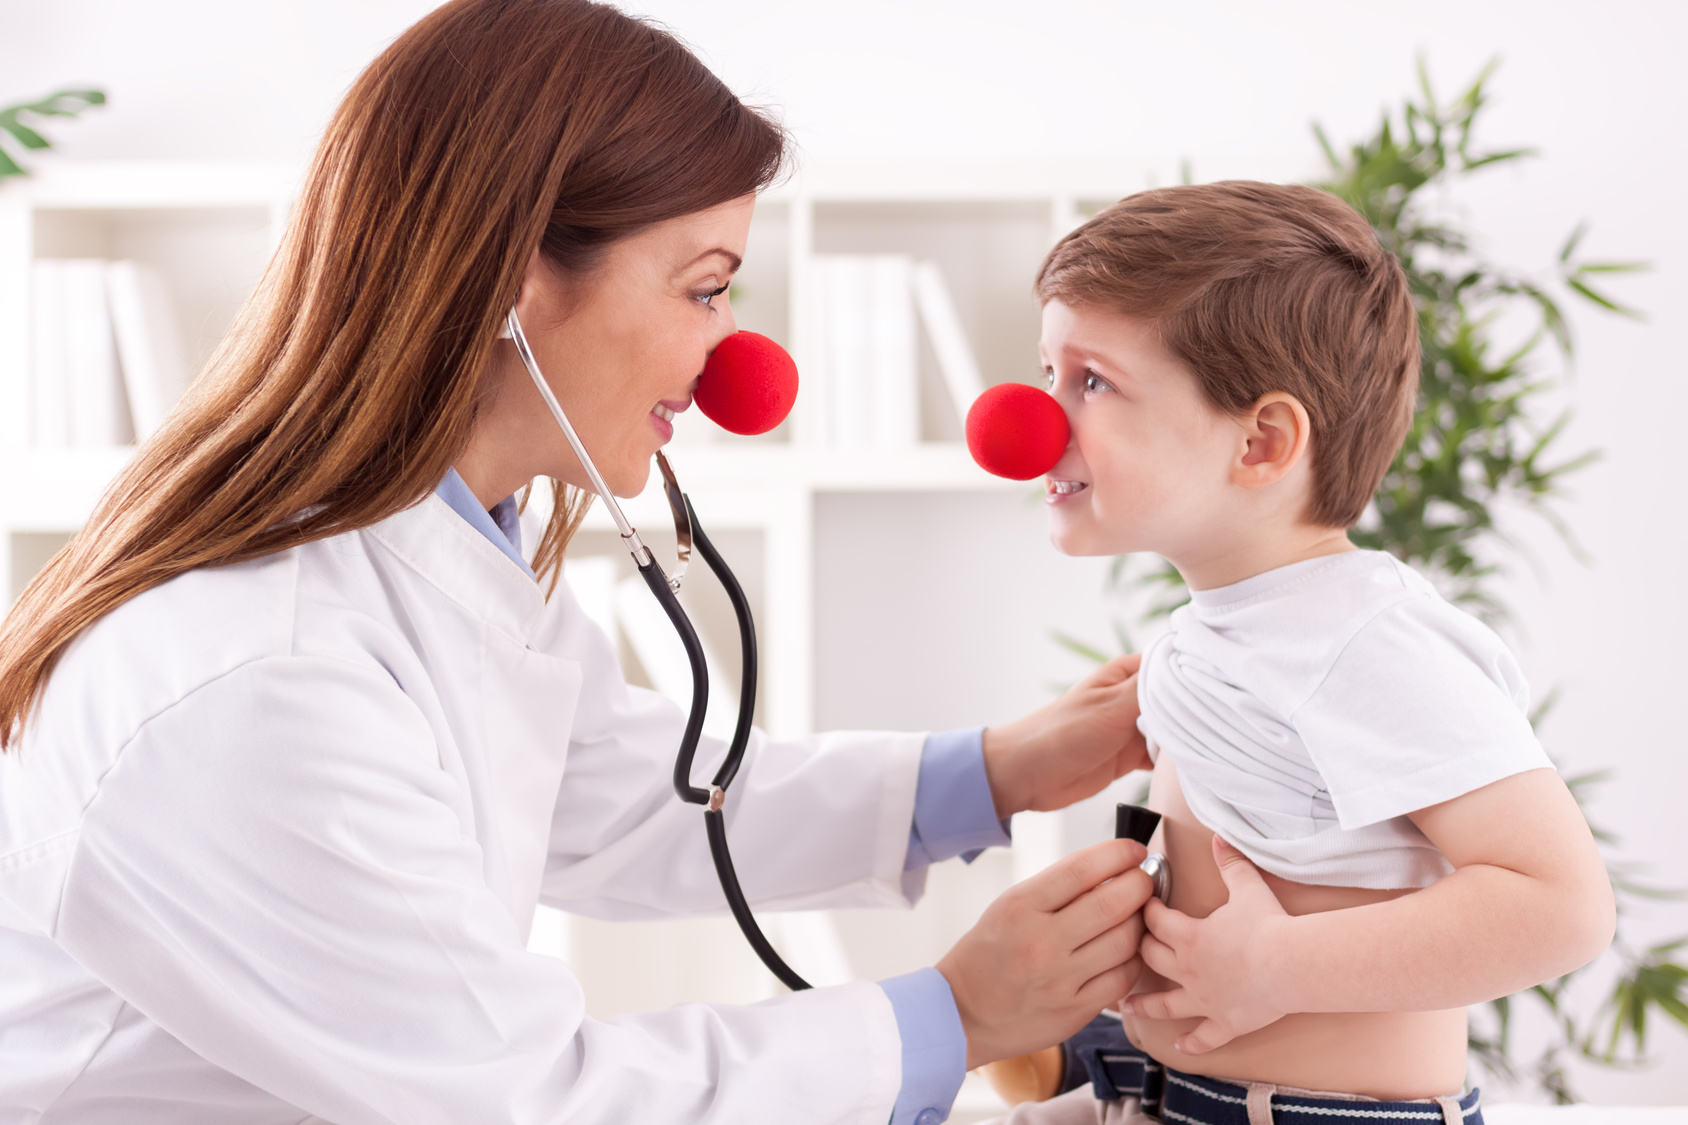 Where can I find a childrens doctor